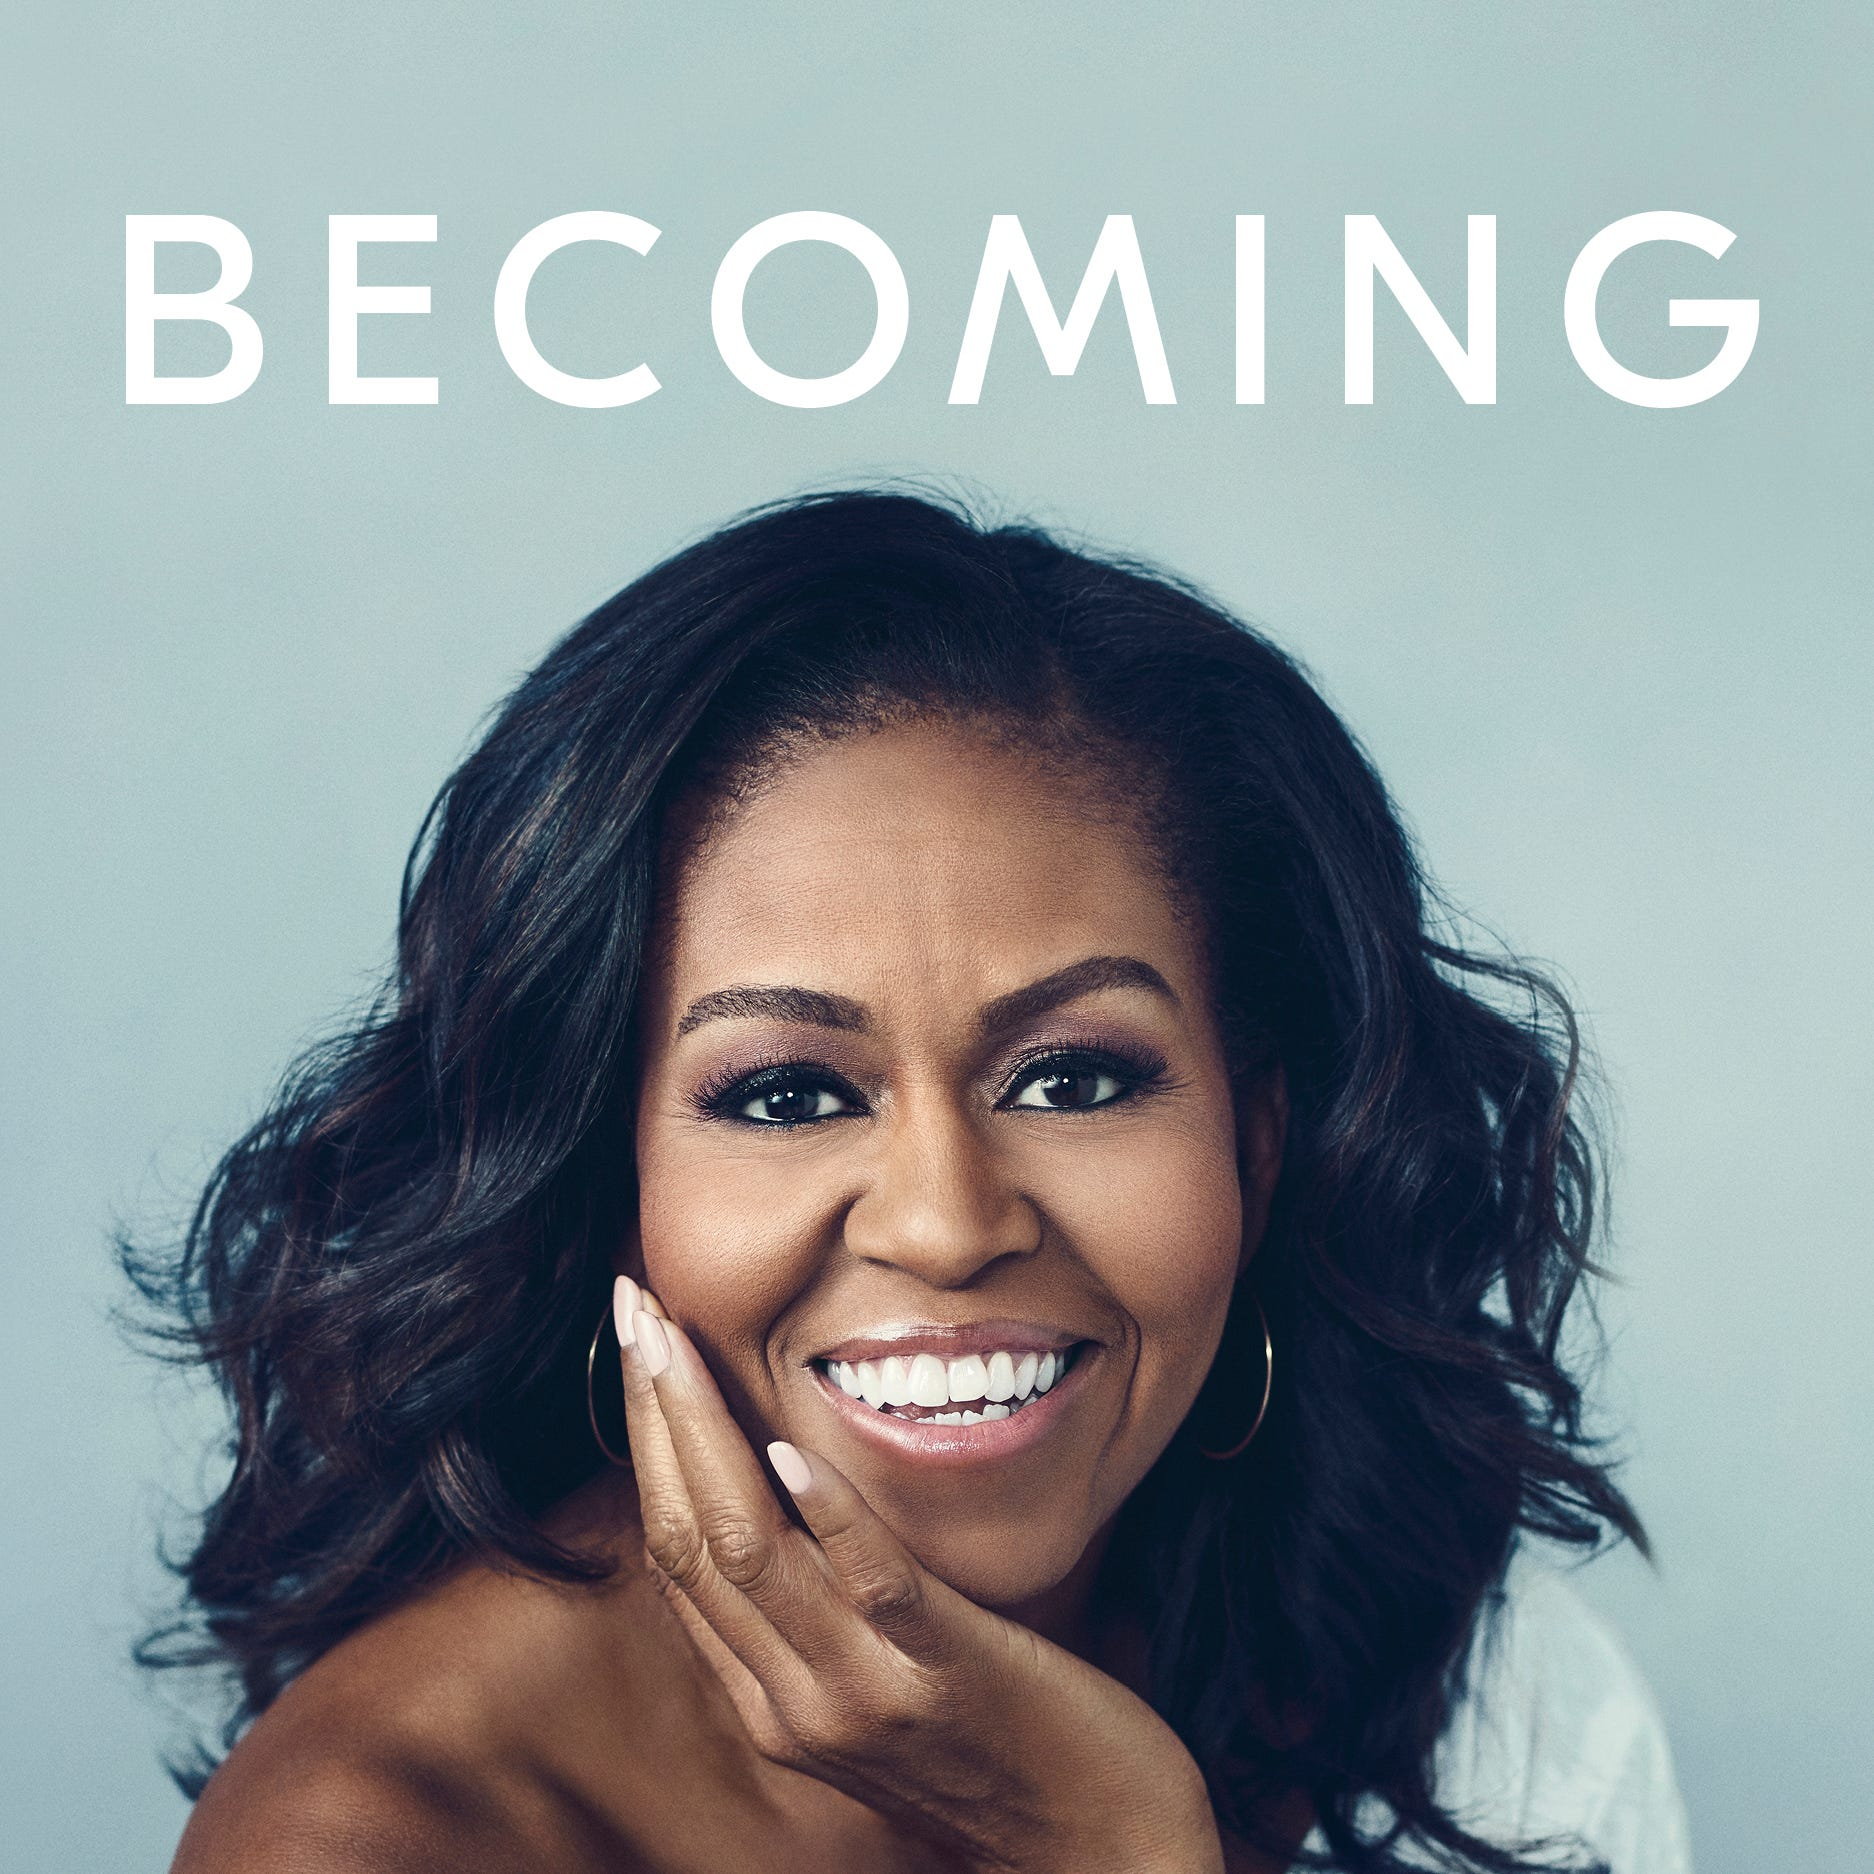 Tickets sell out quickly for Michelle Obama; prices skyrocket on resale sites